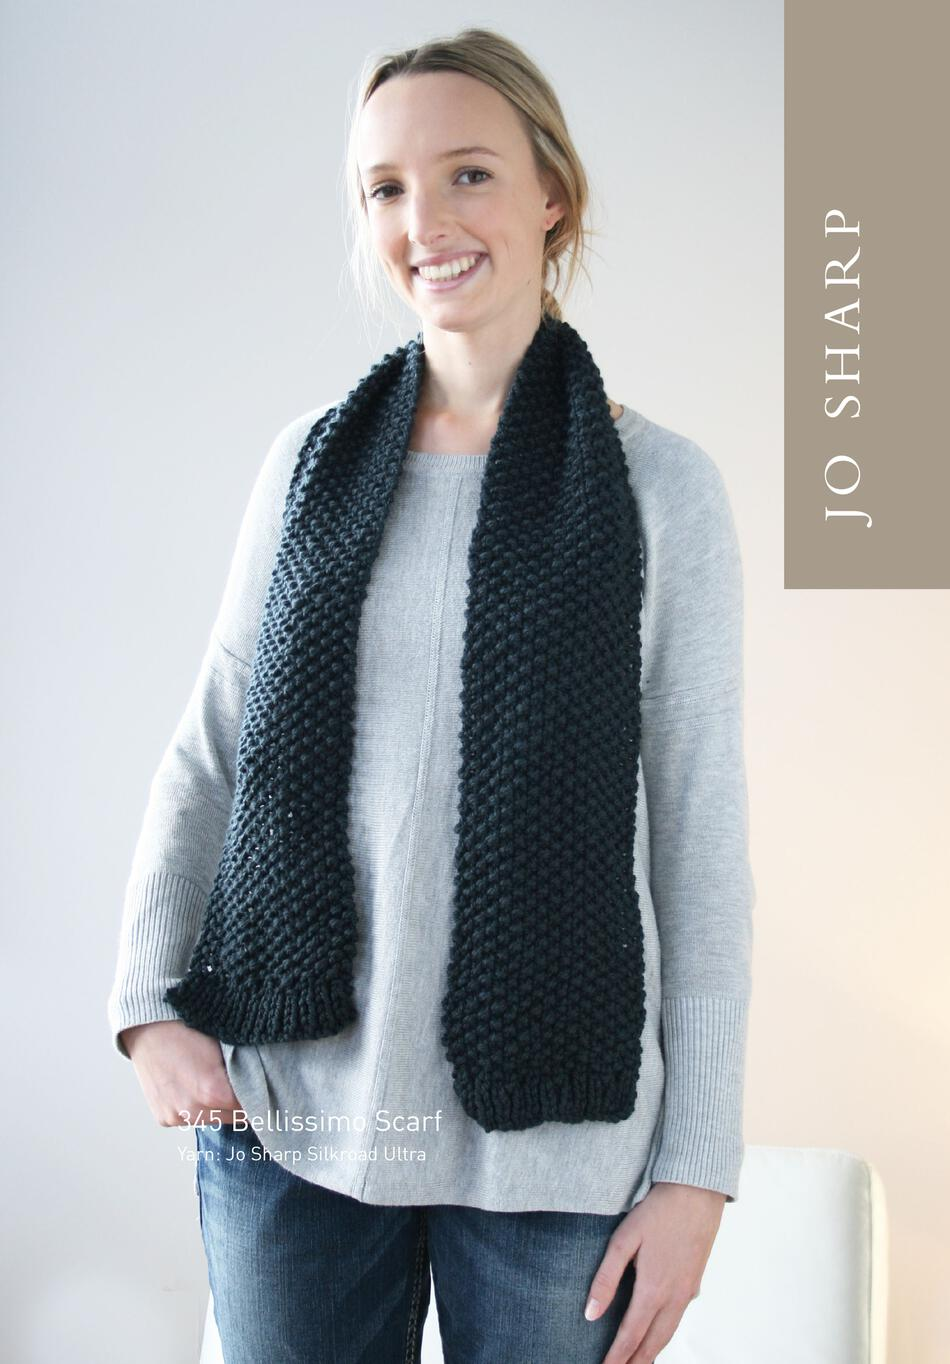 Knitting Patterns Jo Sharp Bellissimo Cowl and Scarf  Pattern